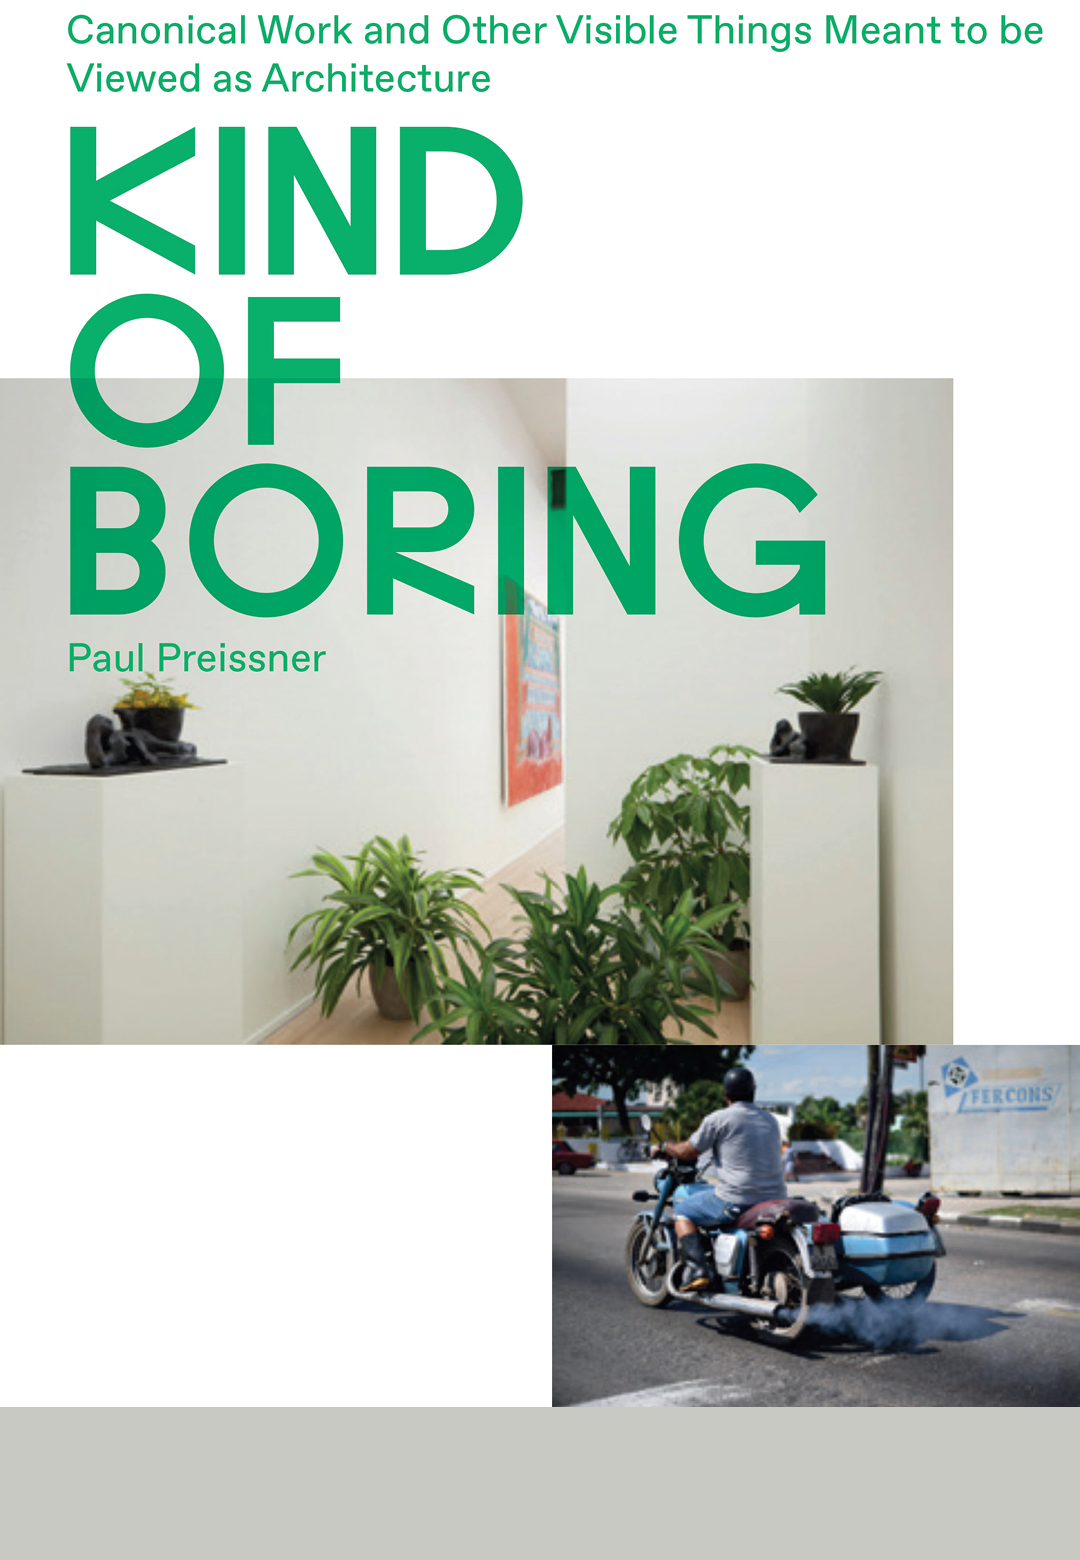 Cover of 'Kind of Boring' by Paul Preissner; Jessie Edelman at Andrew Rafacz Gallery 2020; Photo of motorcyclist in Havana, Cuba 2017| Kind of Boring | STIRworld